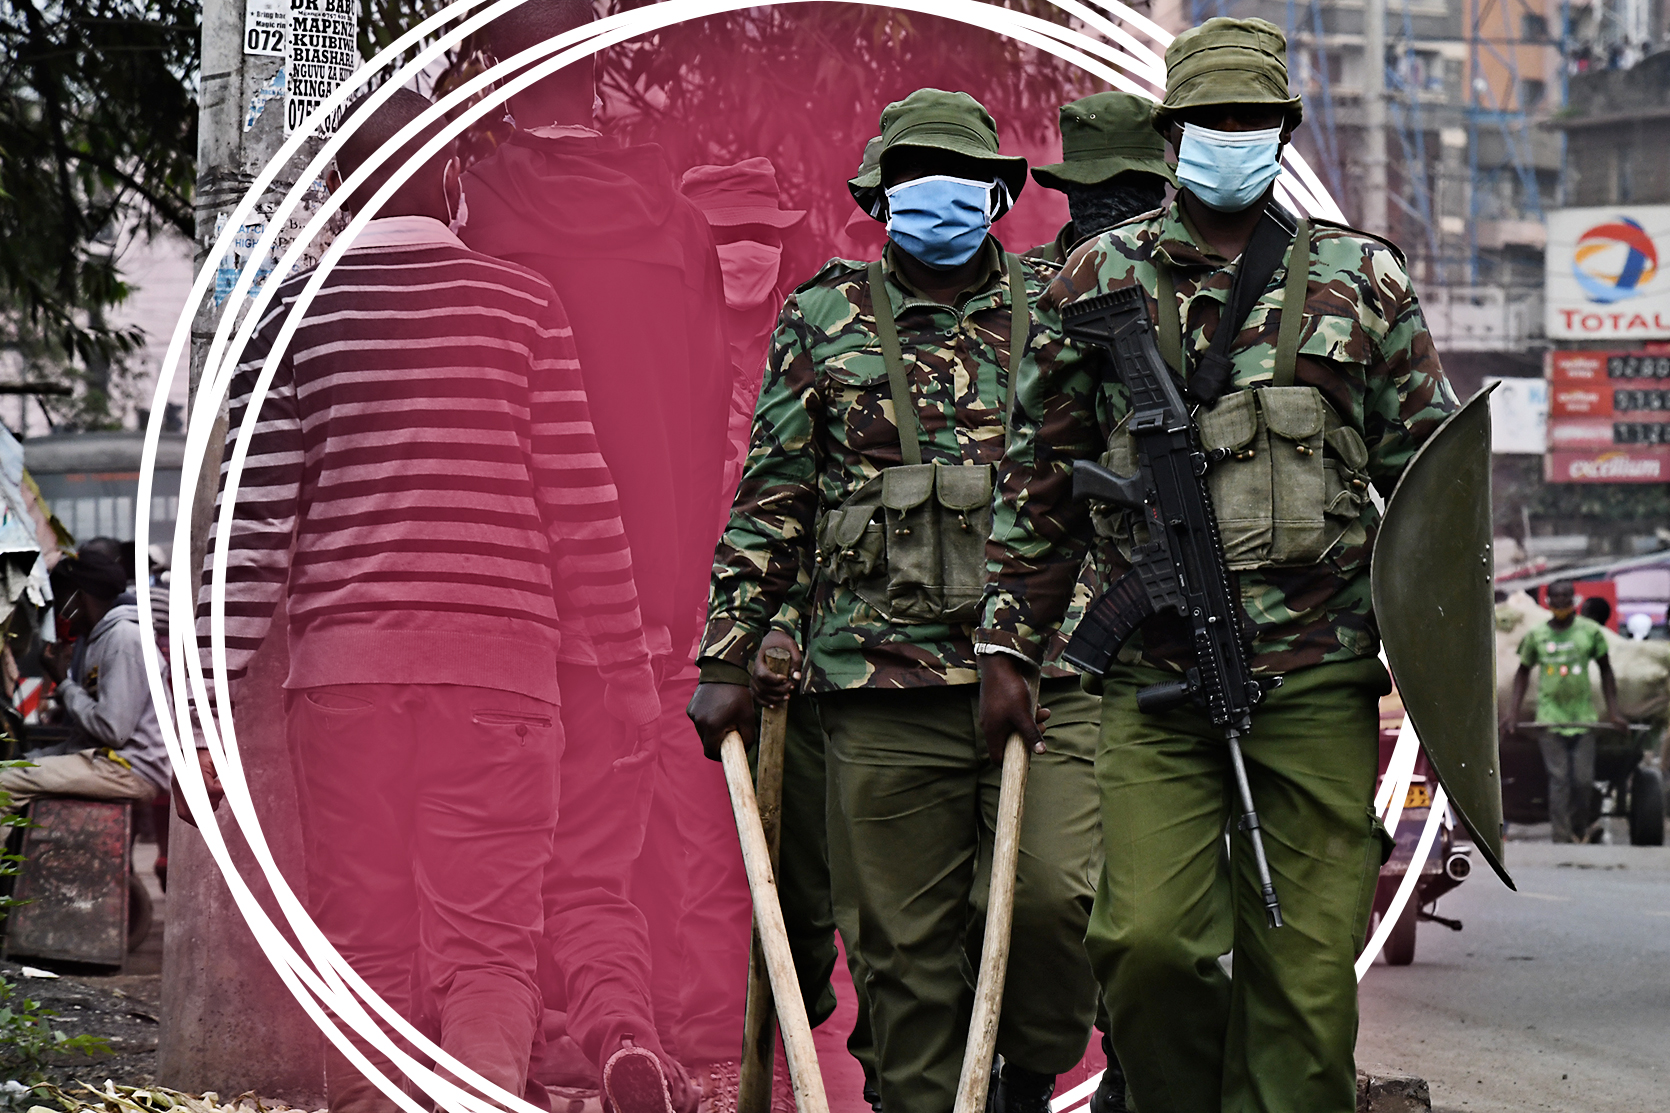 COVID-19: In Kenya, confusion and corruption while politicians flout lockdowns